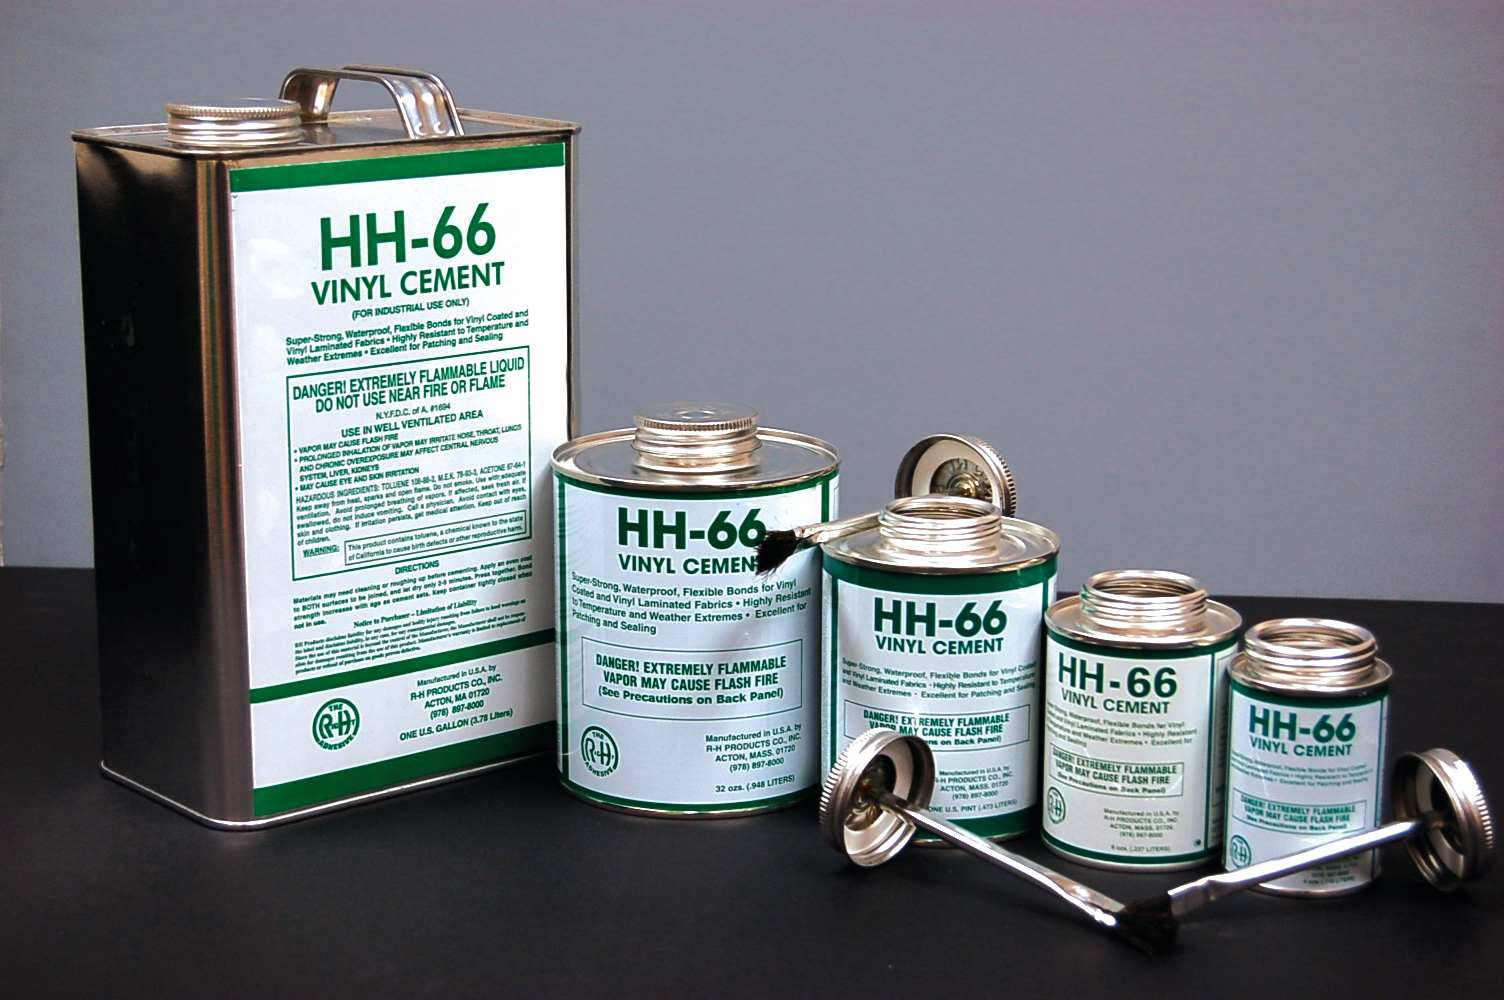 HH-66 Vinyl Cement (1 Gallon can of thinner)